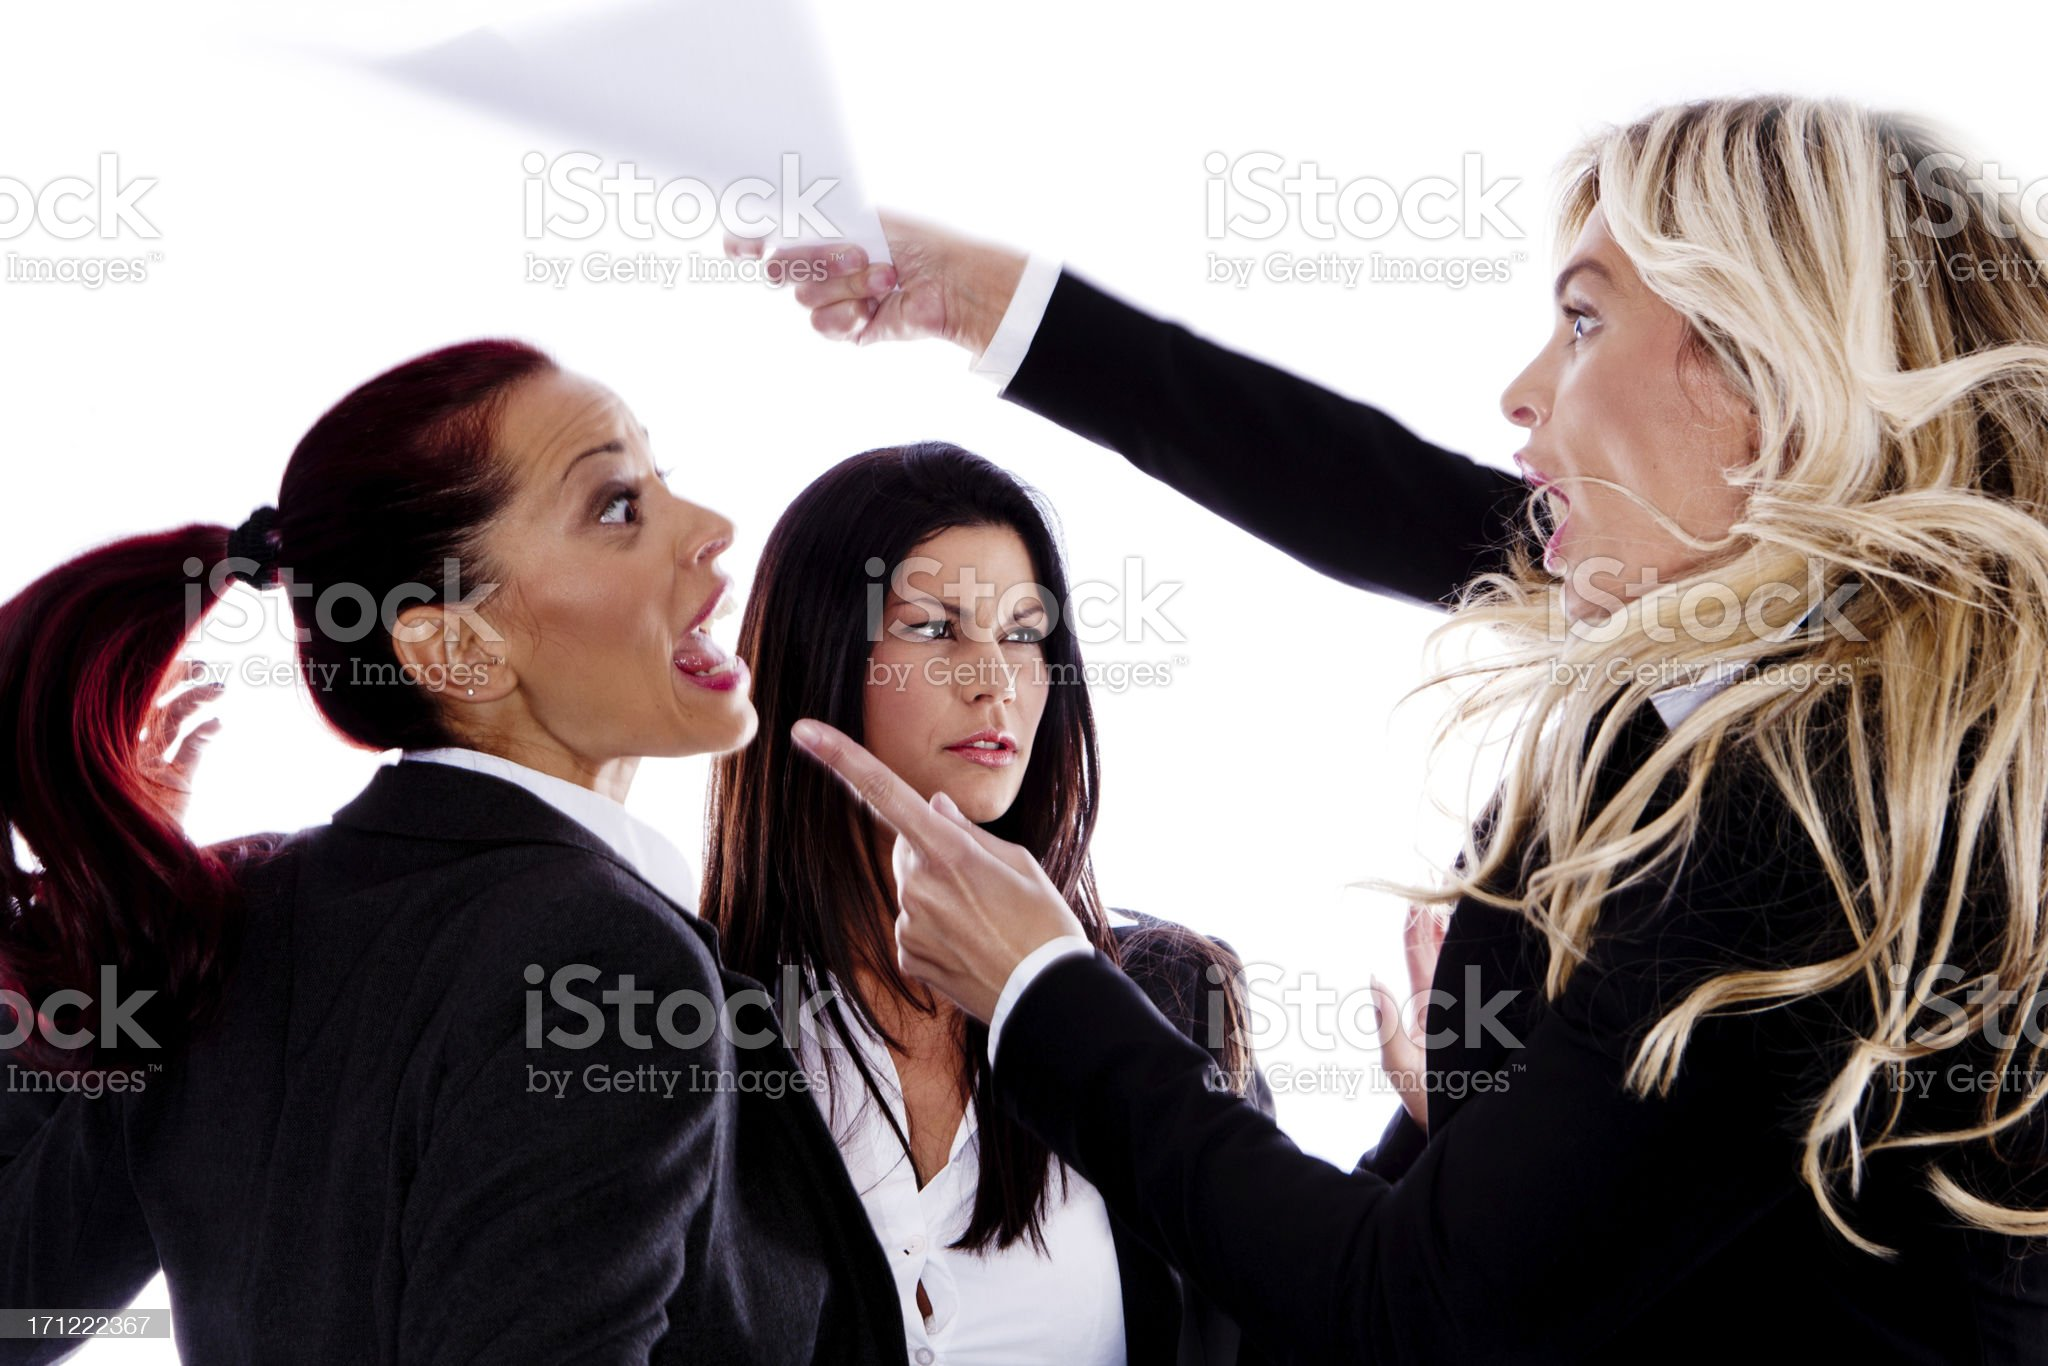 Argument royalty-free stock photo